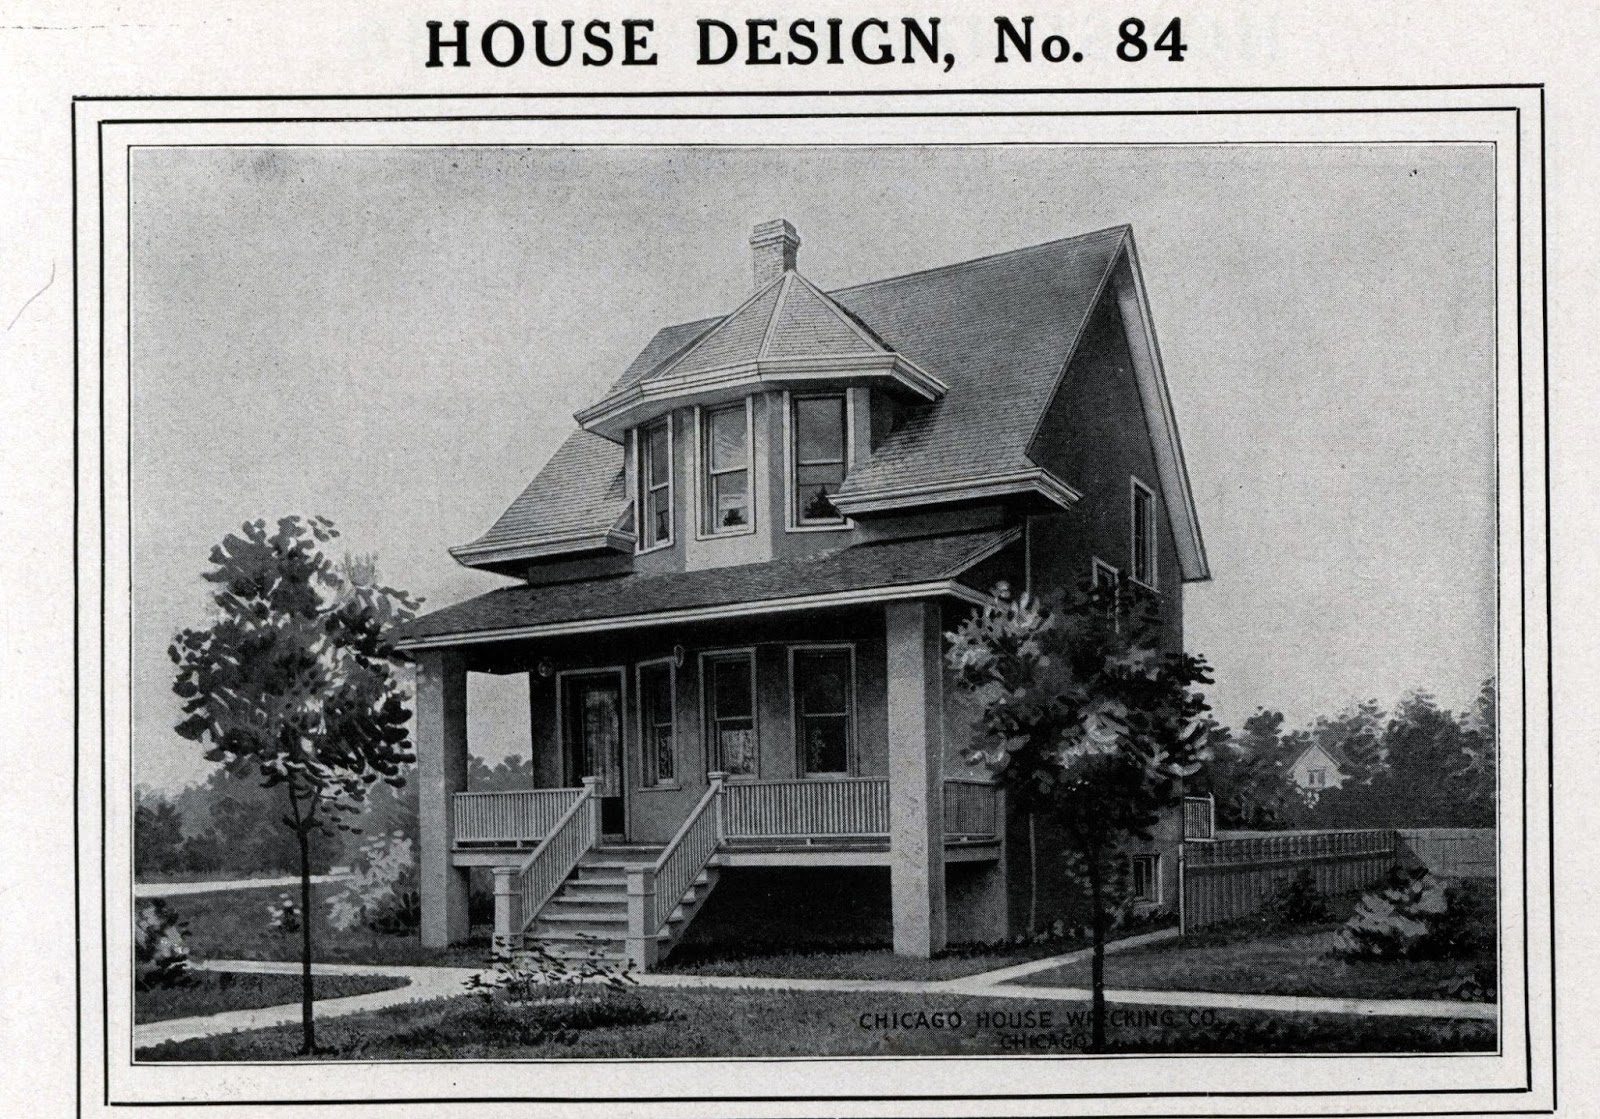 1910 House Plans Spanish Bungalow: Dueling Kit Houses In Maywood